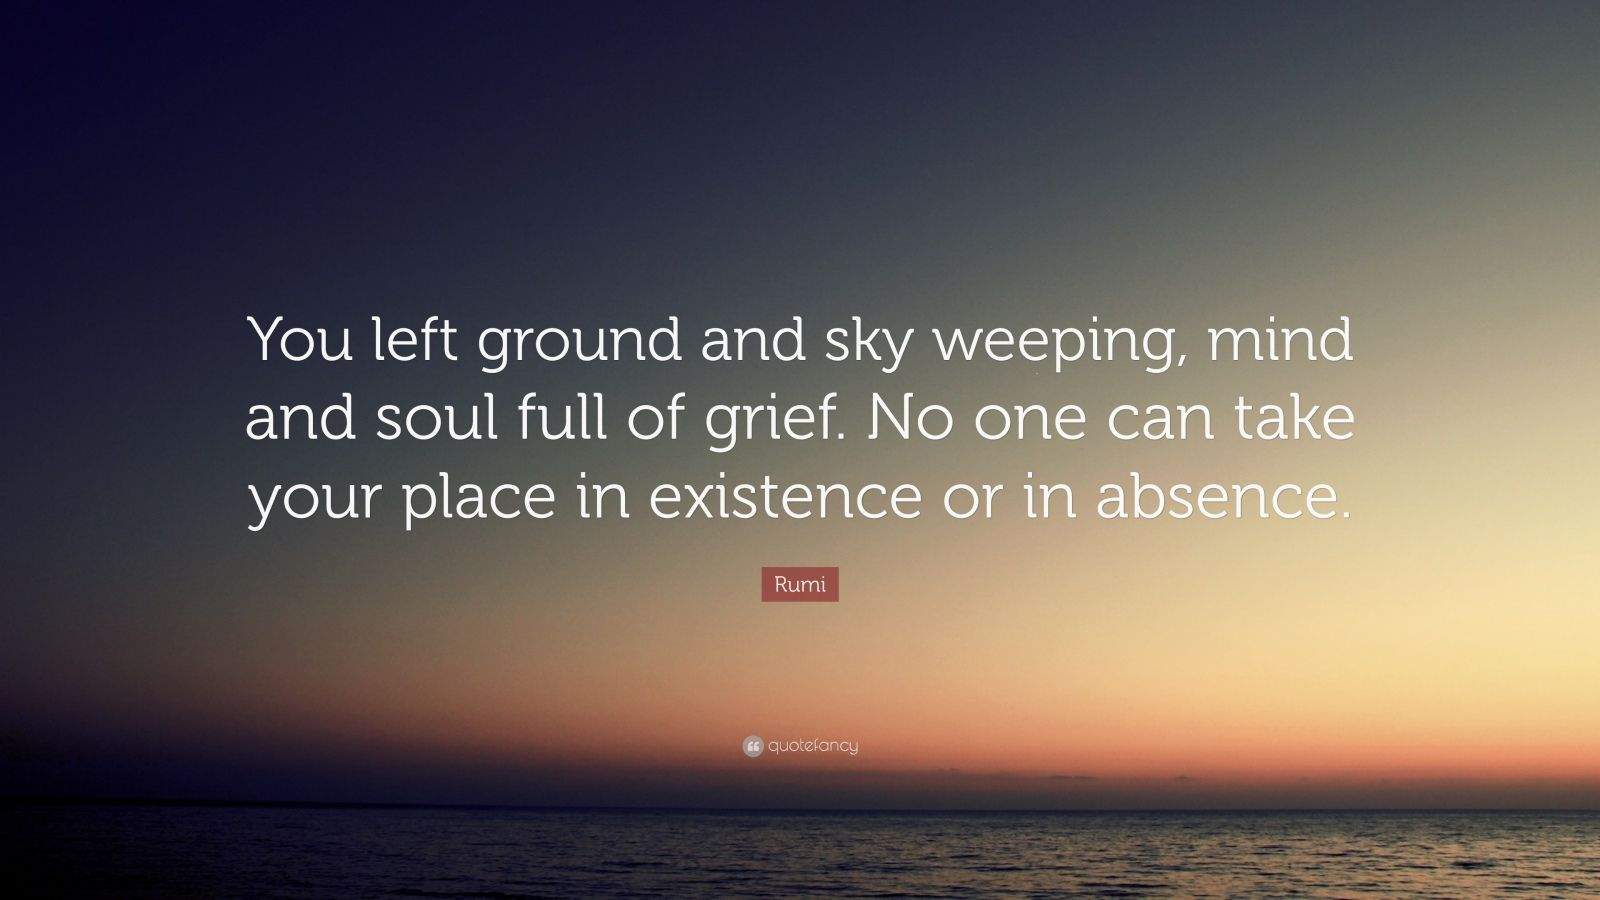 """Rumi Quote: """"You left ground and sky weeping, mind and soul full of grief. No one can take your place in existence or in absence."""""""